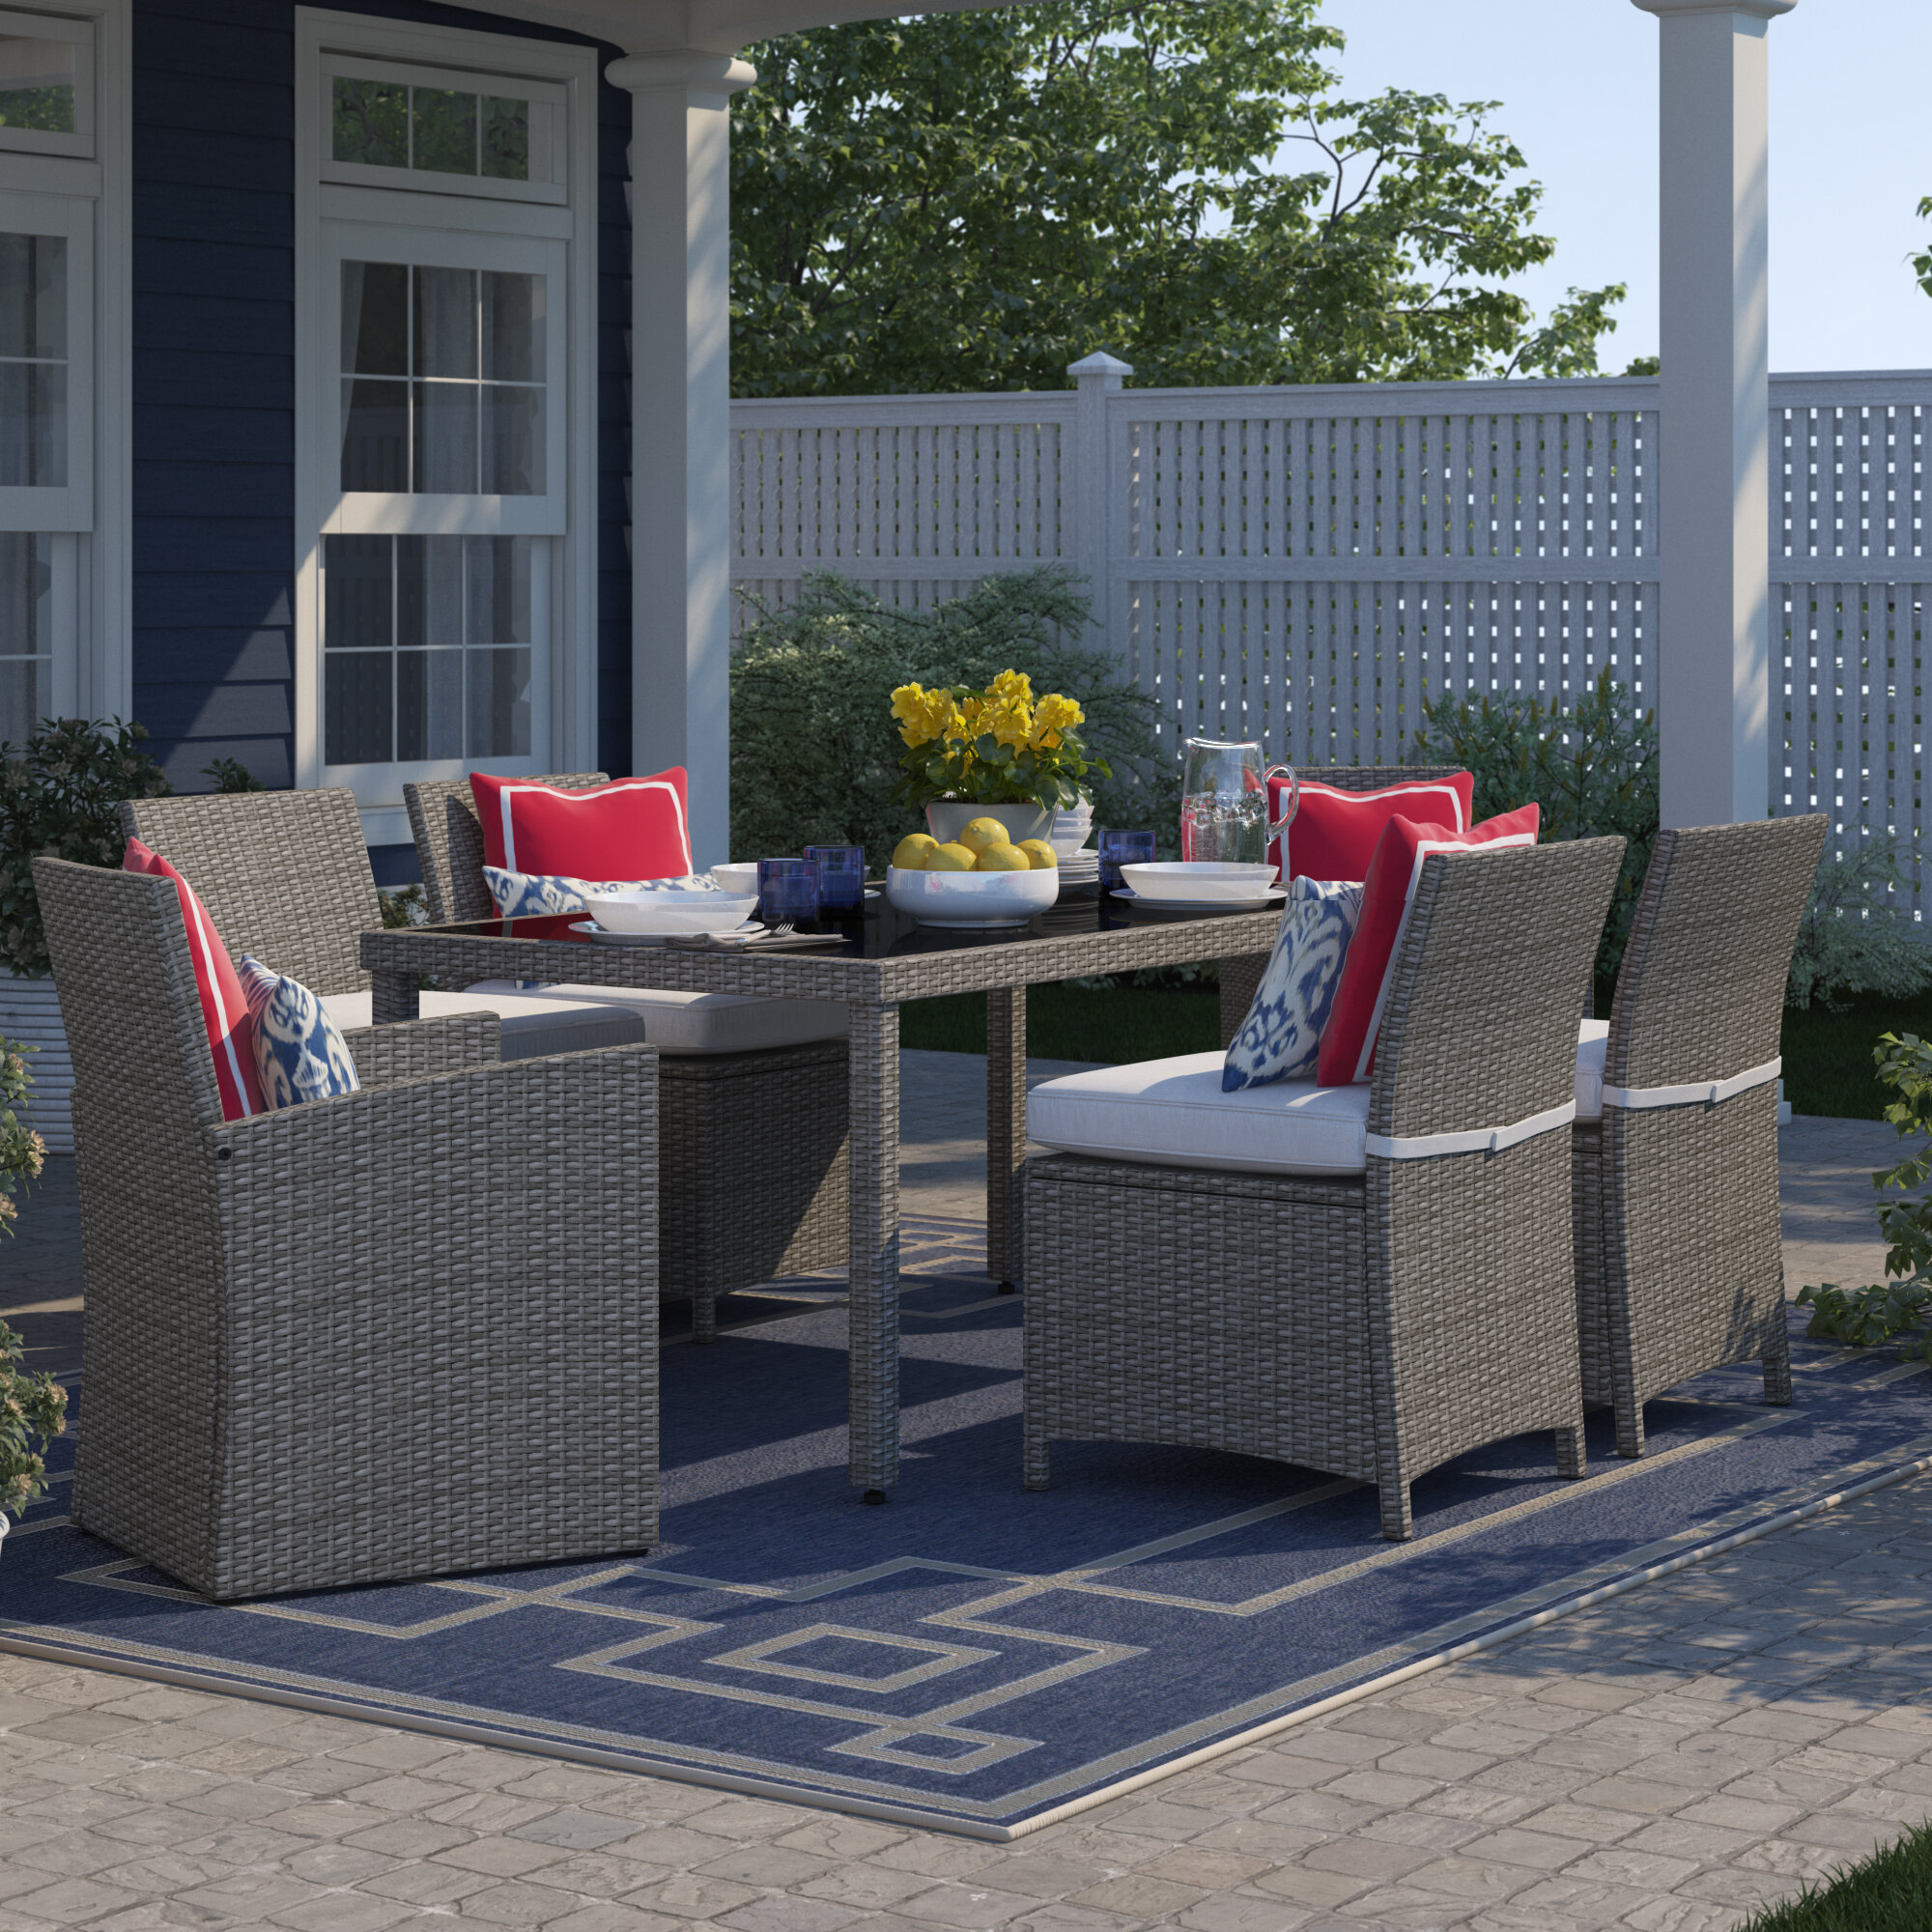 Sol 72 Outdoor Worthing 7 Piece Dining Set With Cushions Reviews Wayfair